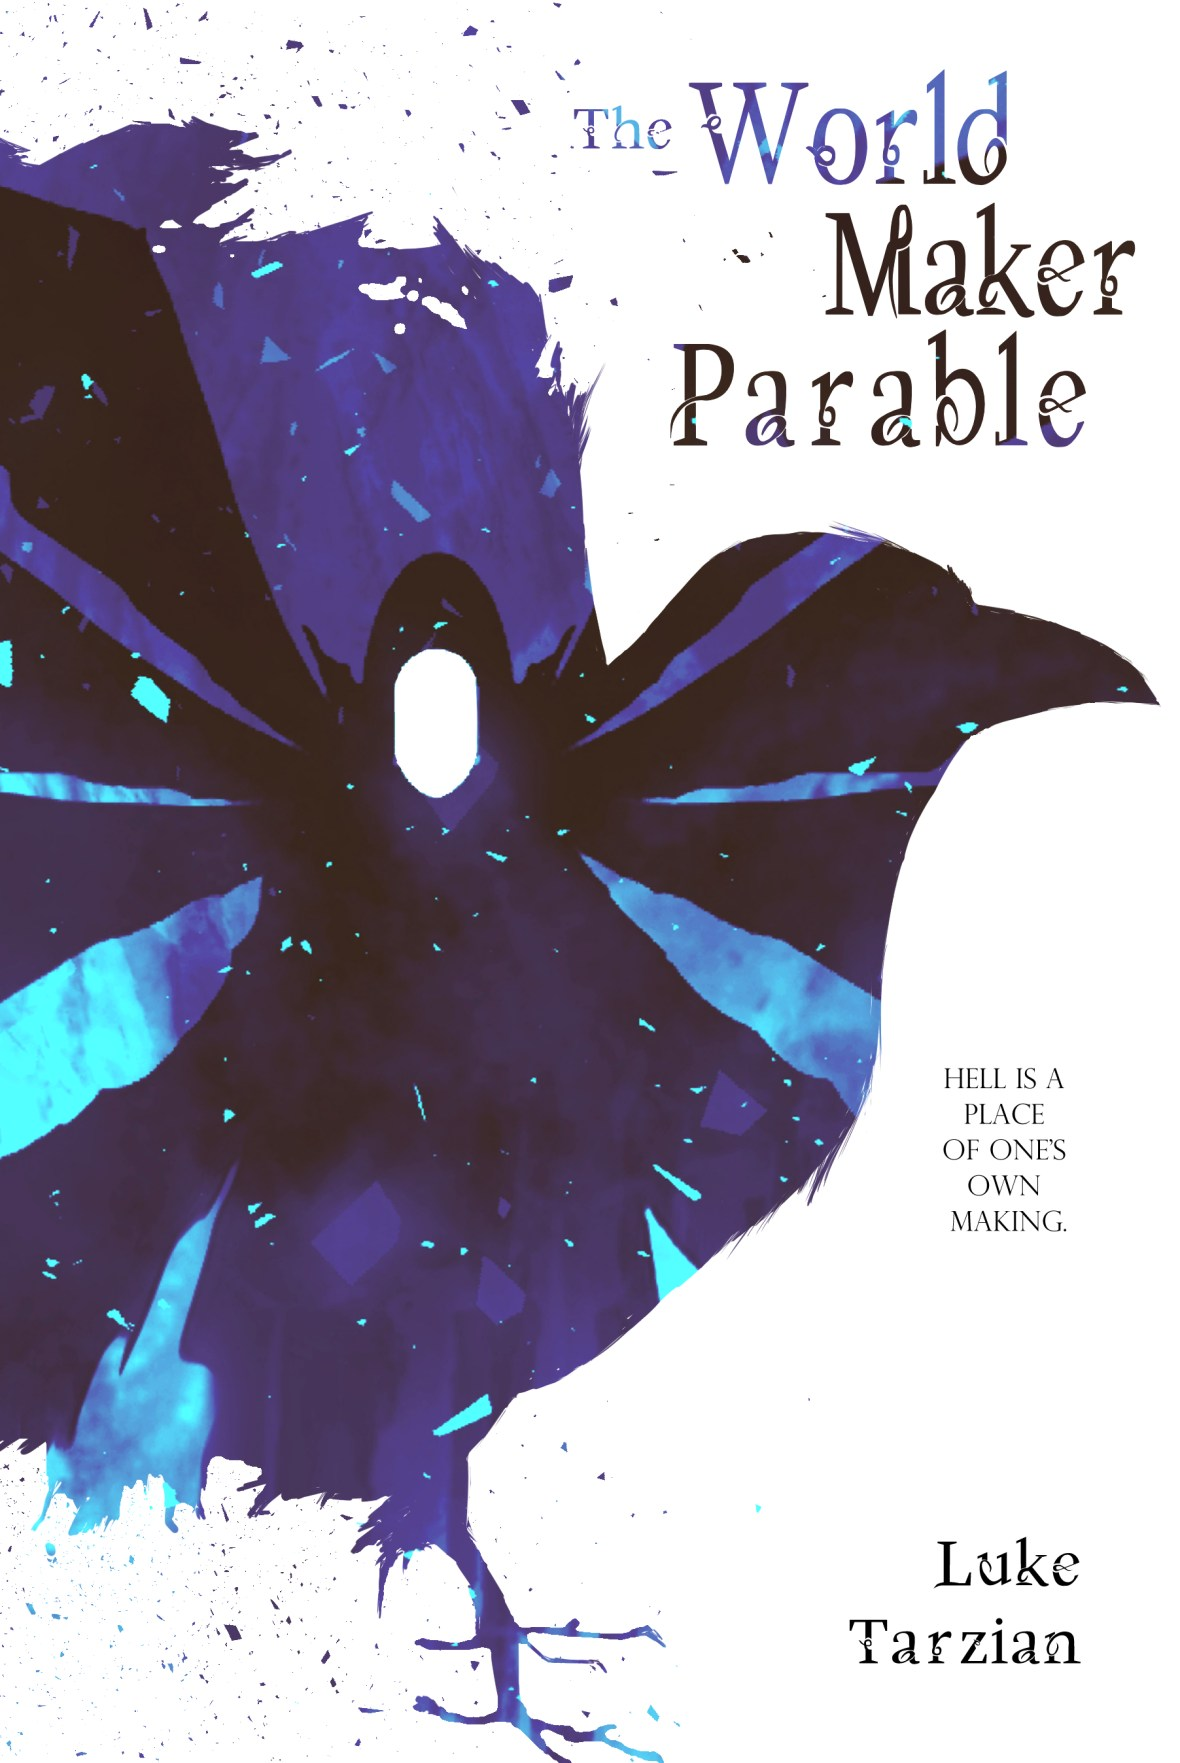 The World Maker Parable by Luke Tarzian